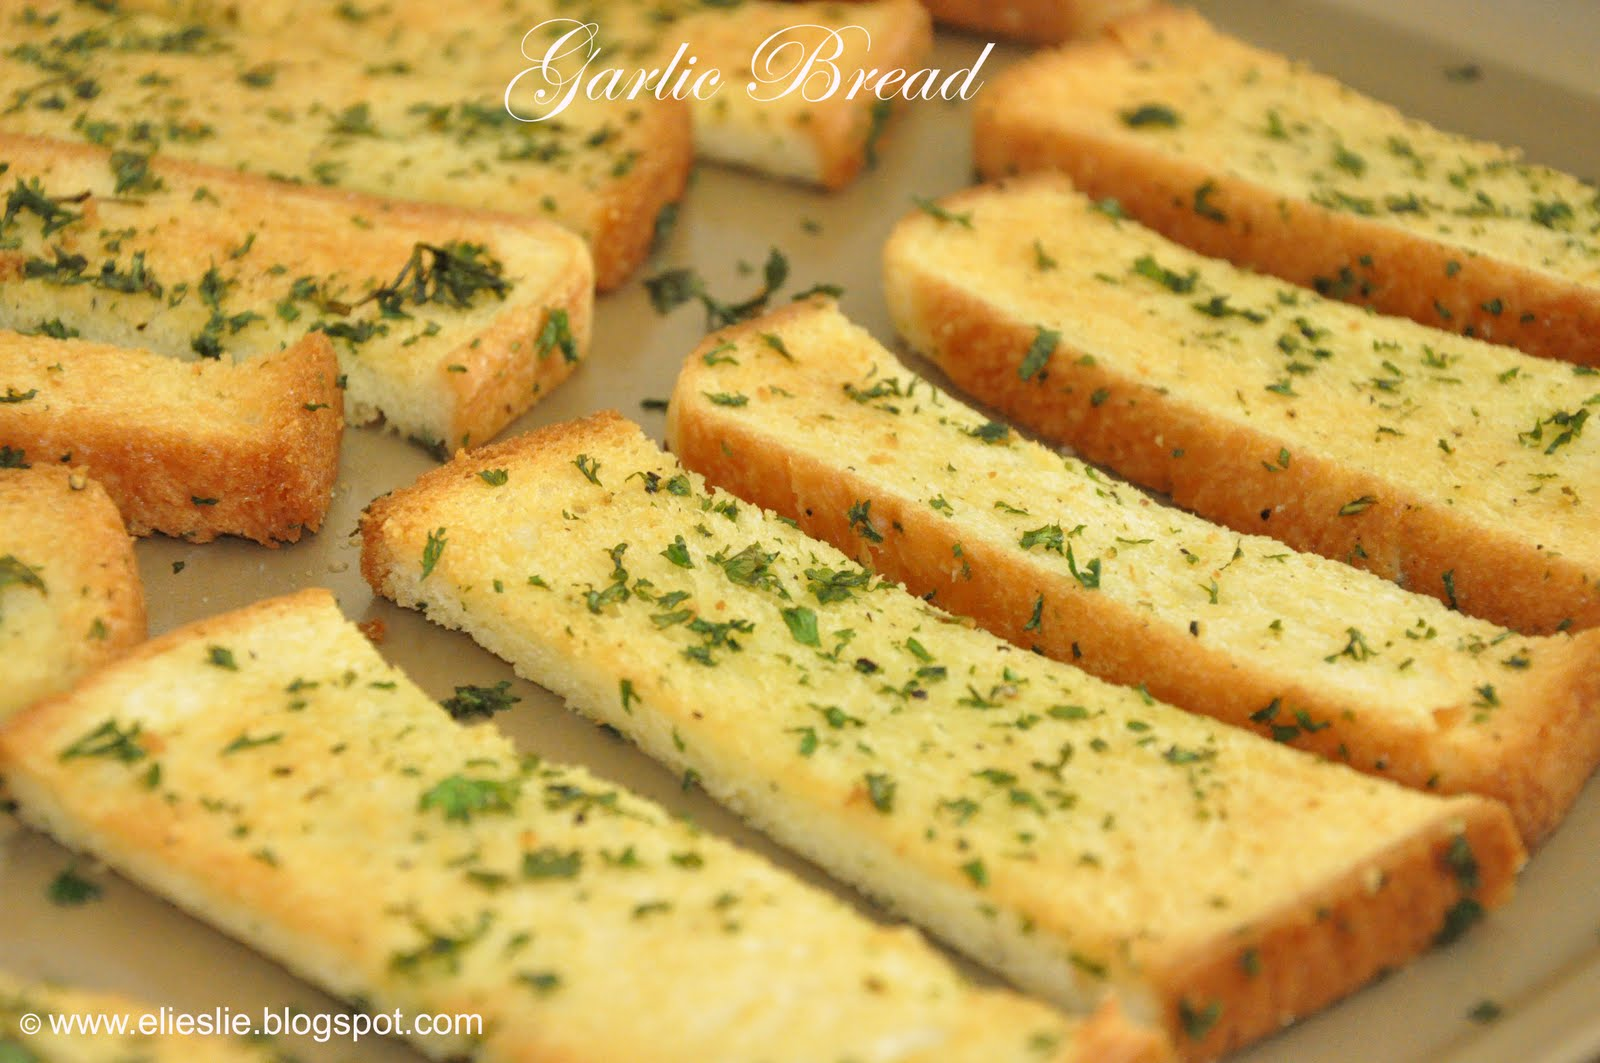 Everyone who loves toast bread will also loves Garlic Bread - even my ...